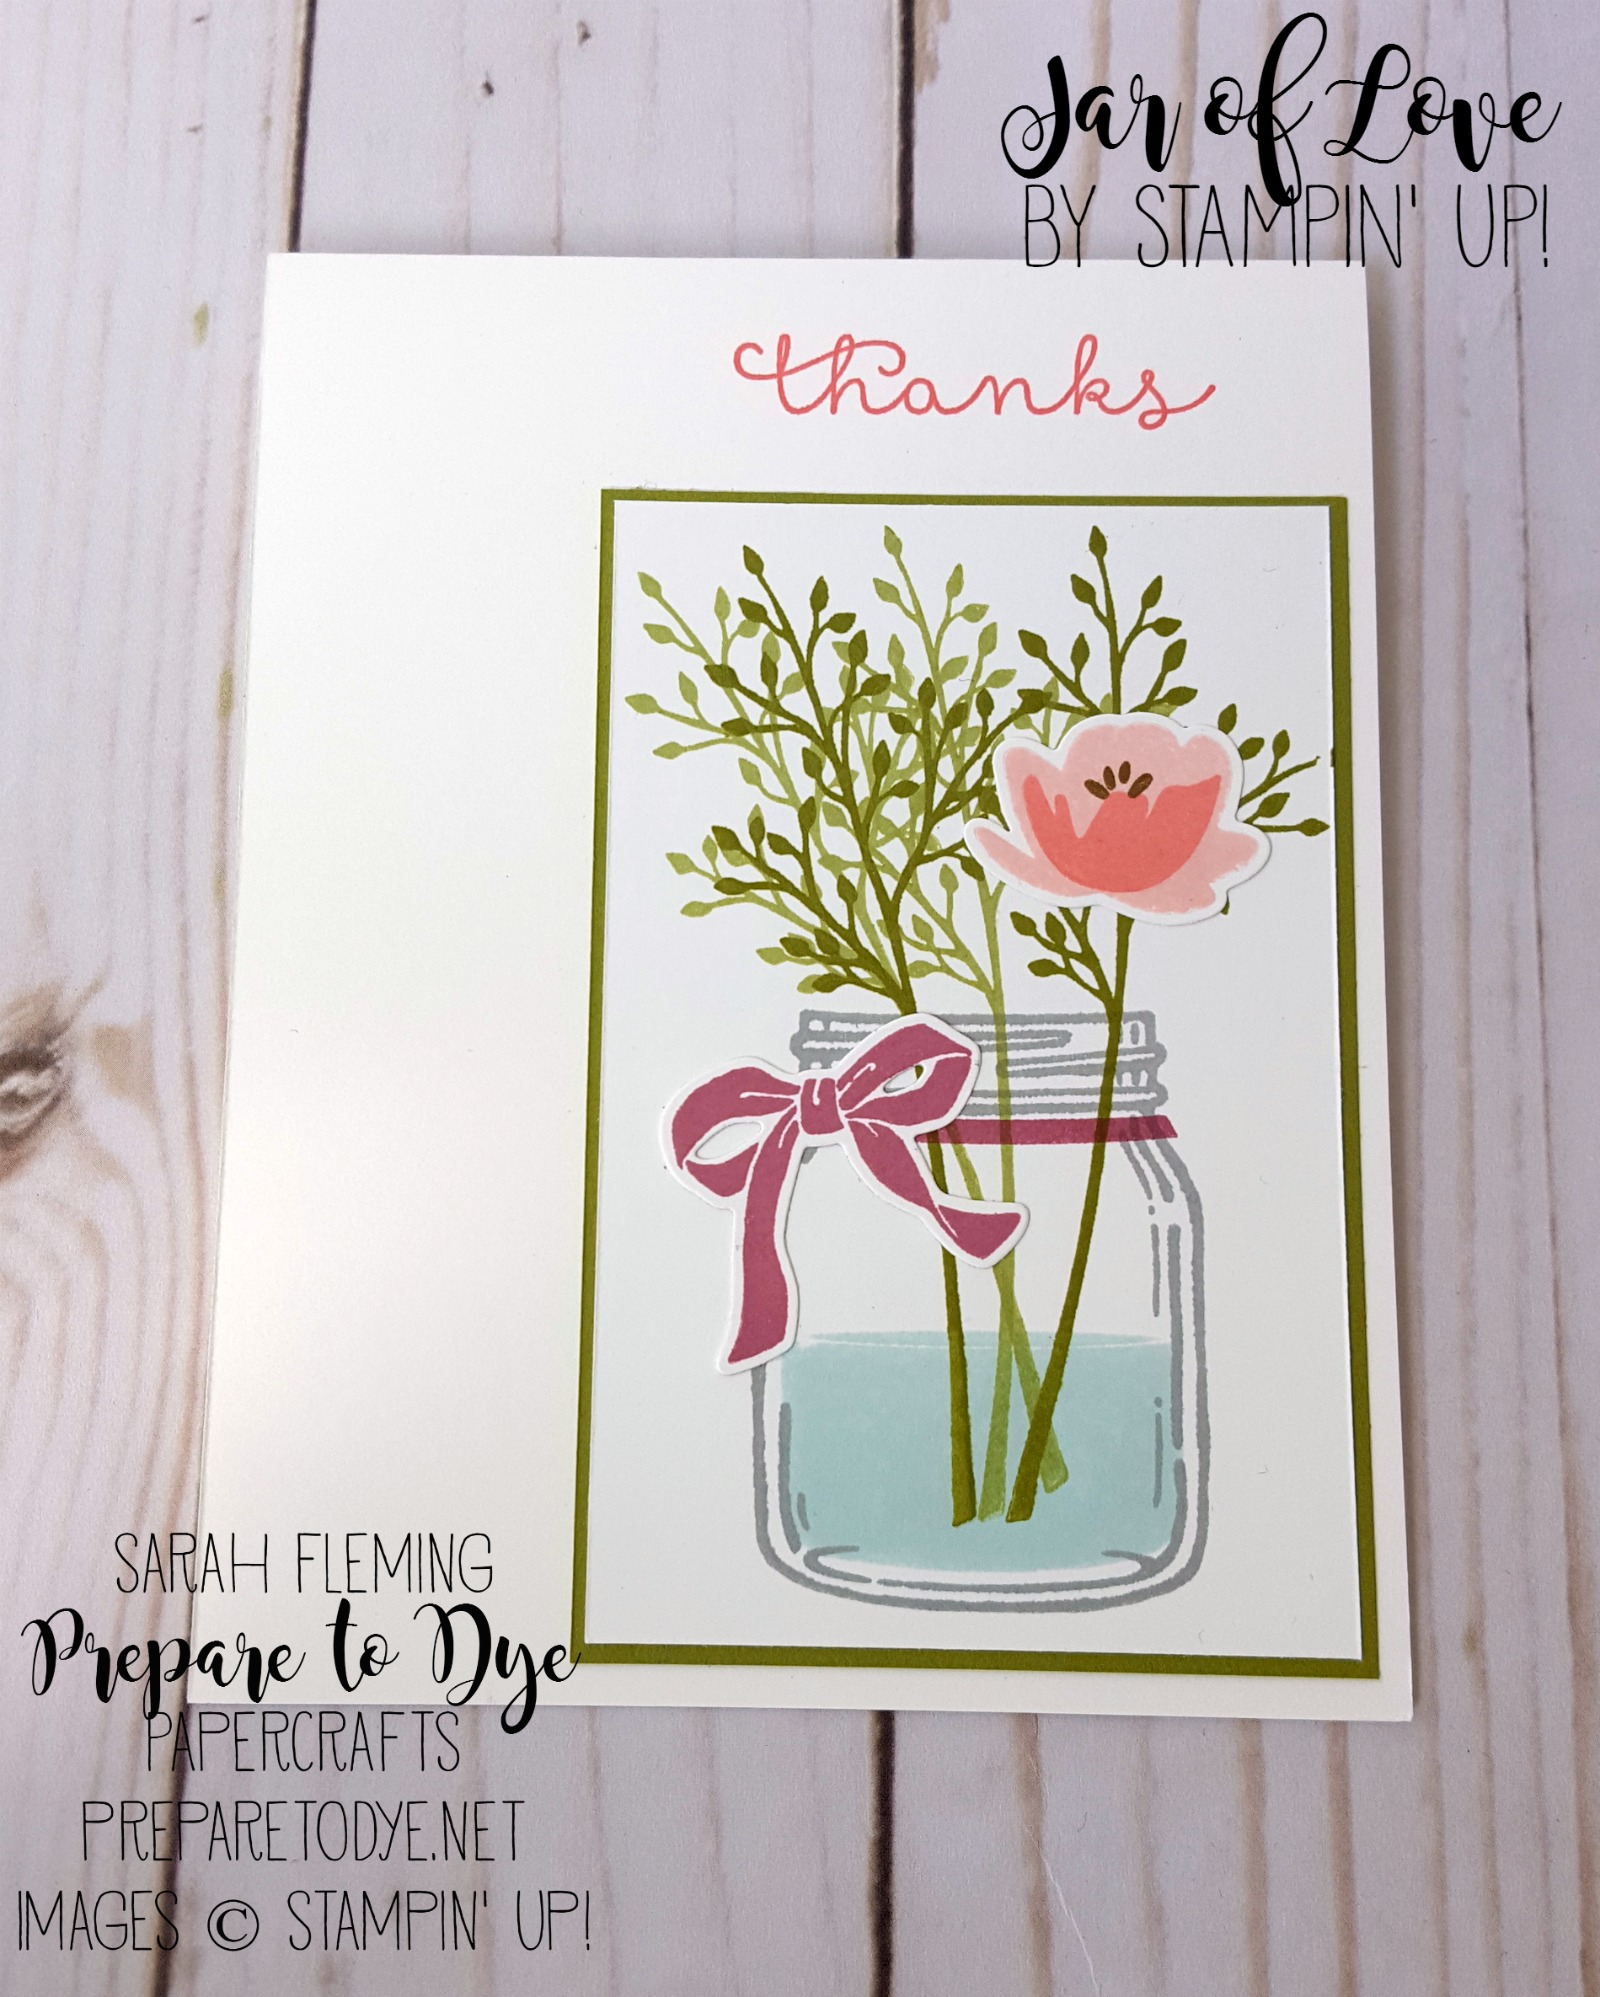 Stampin' Up! Jar of Love bundle and Cottage Greetings - handmade thank you card - clean and simple card - CAS - Sarah Fleming - Prepare to Dye Papercrafts